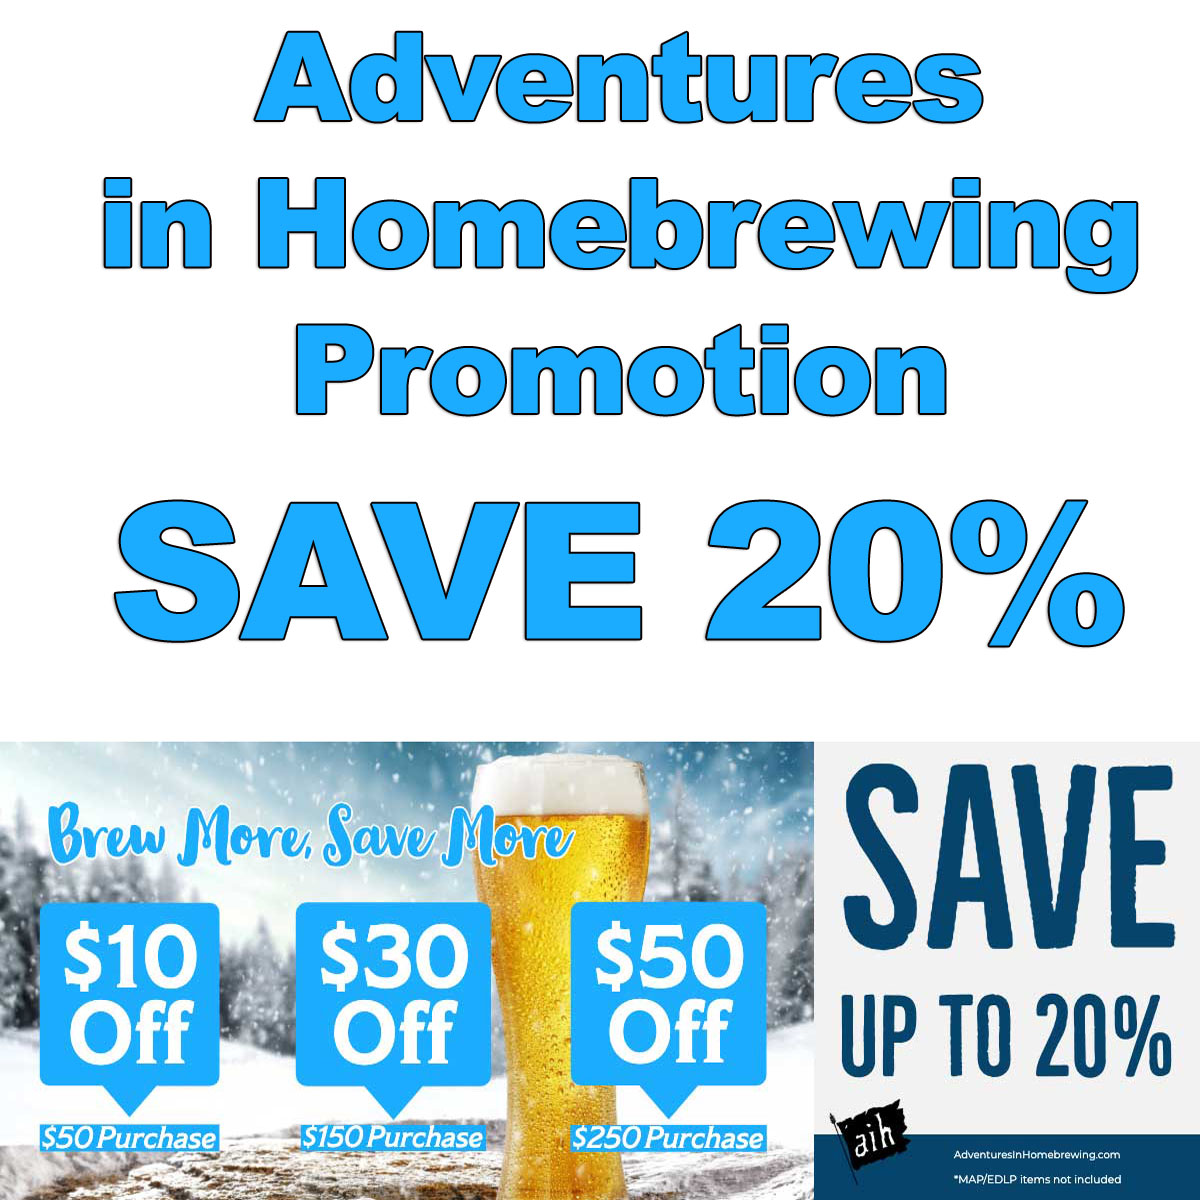 Home Wine Making Coupon Codes for Save Up To 20% at Adventures in Homebrewing Right Now with this Homebrewing.org Promotion! Coupon Code